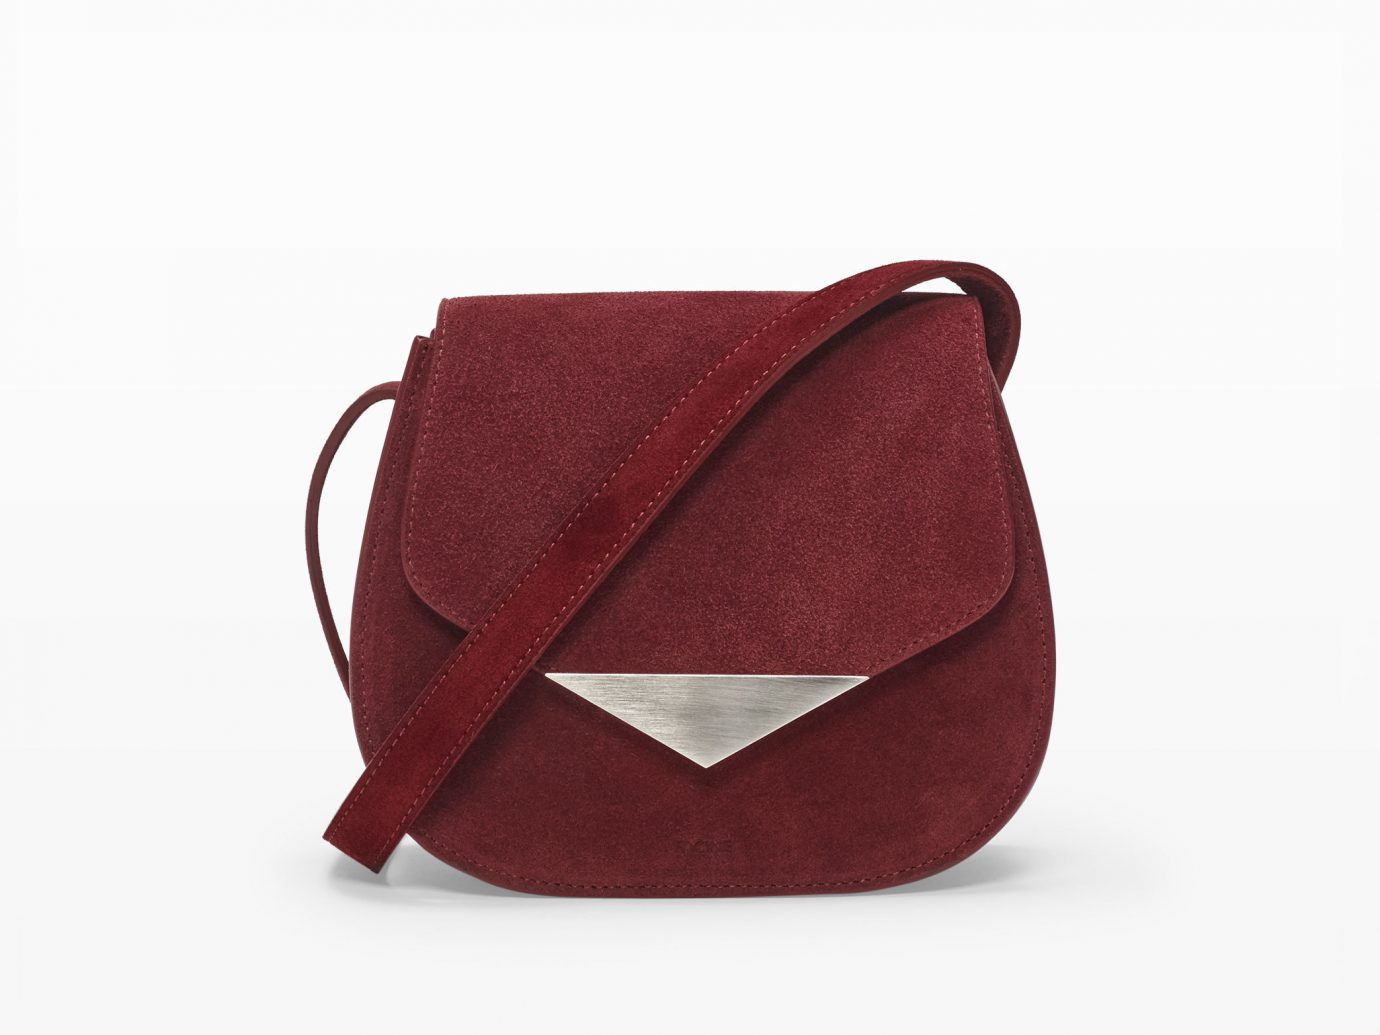 Style + Design bag handbag red maroon brown shoulder bag leather magenta fashion accessory textile messenger bag accessory